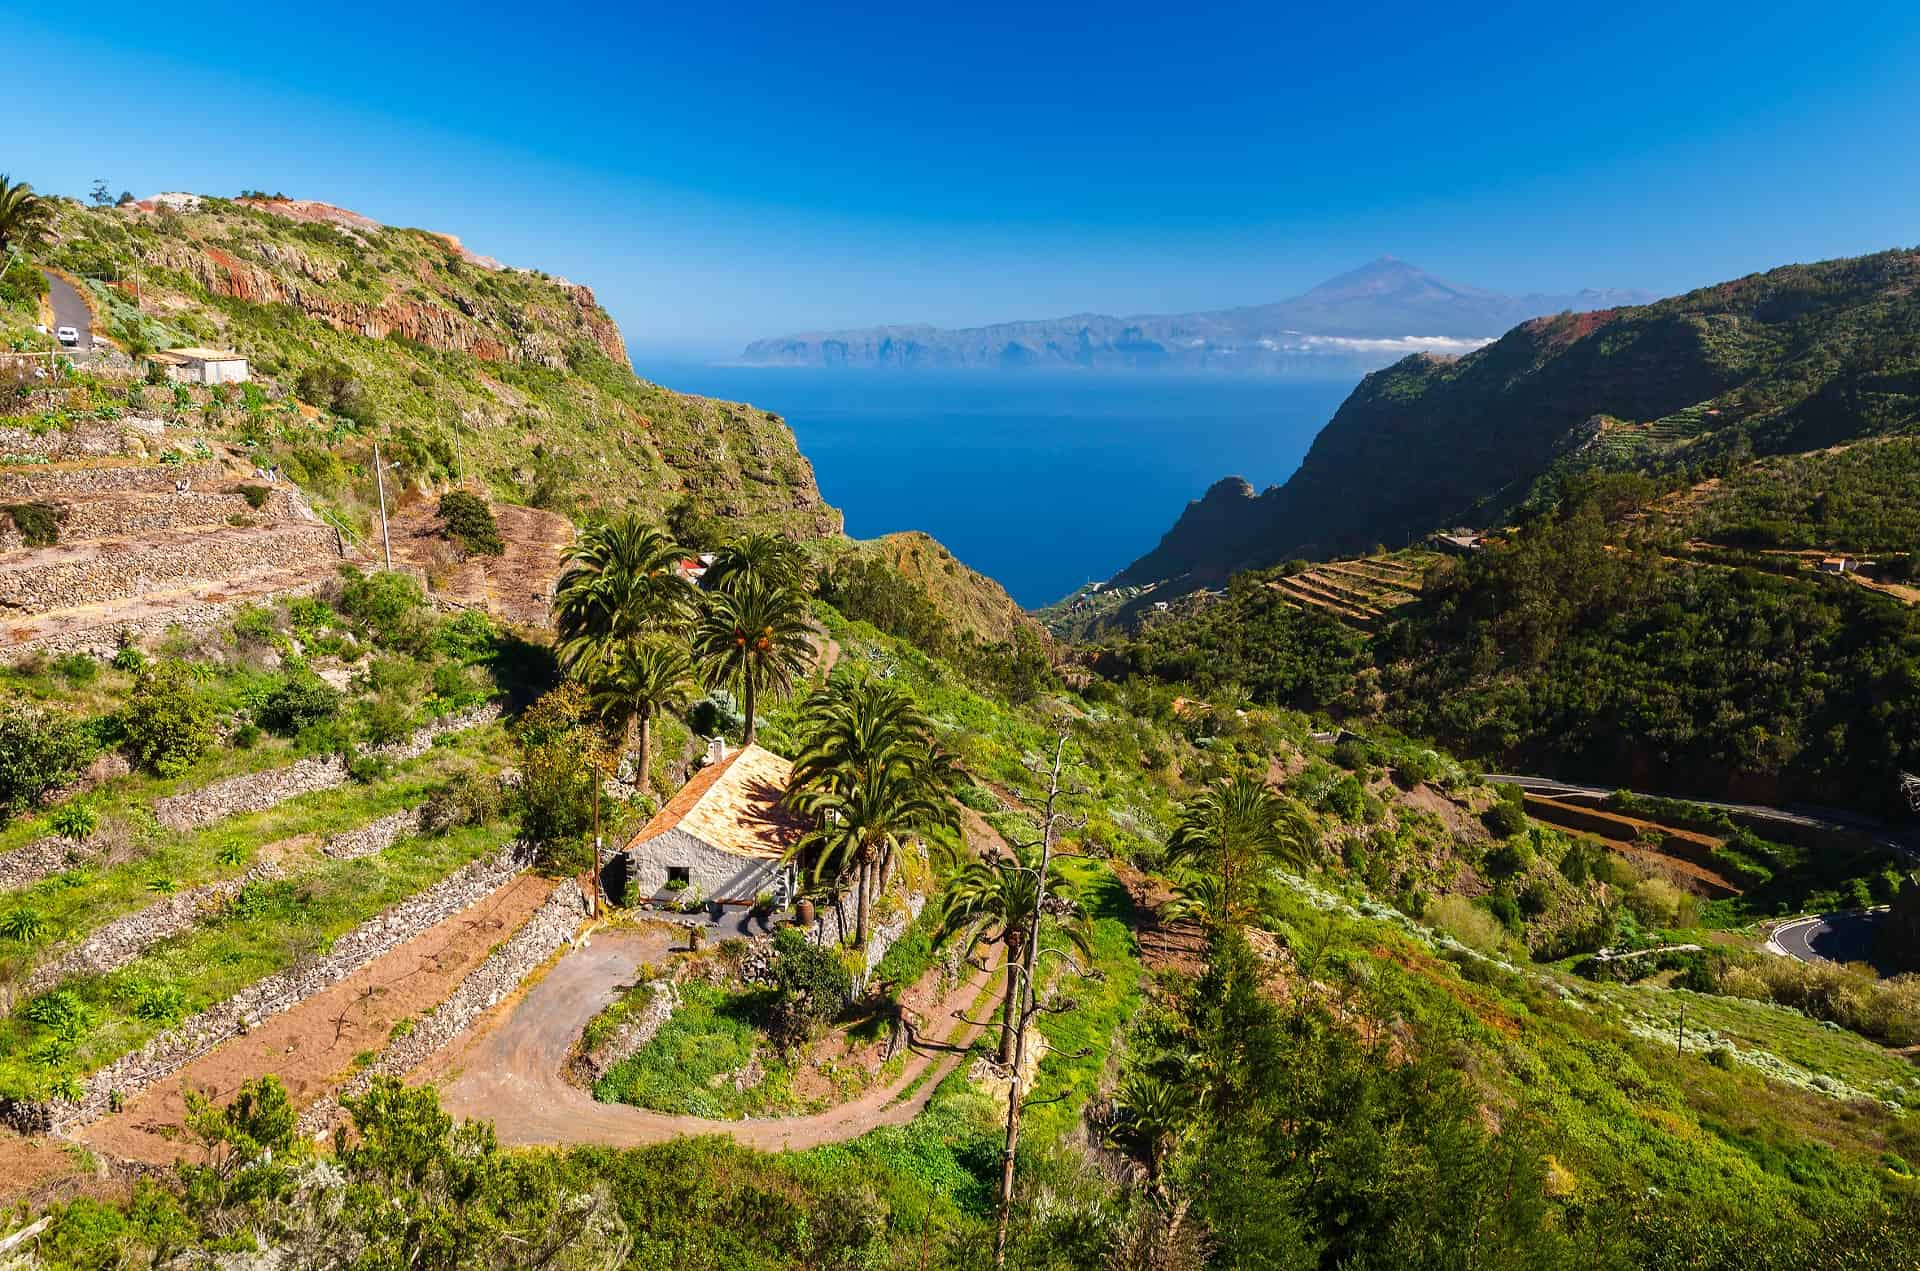 Ferienhaus Mit Pool La Gomera Holiday Cottage La Gomera Valley And Sea Views With Teide In The